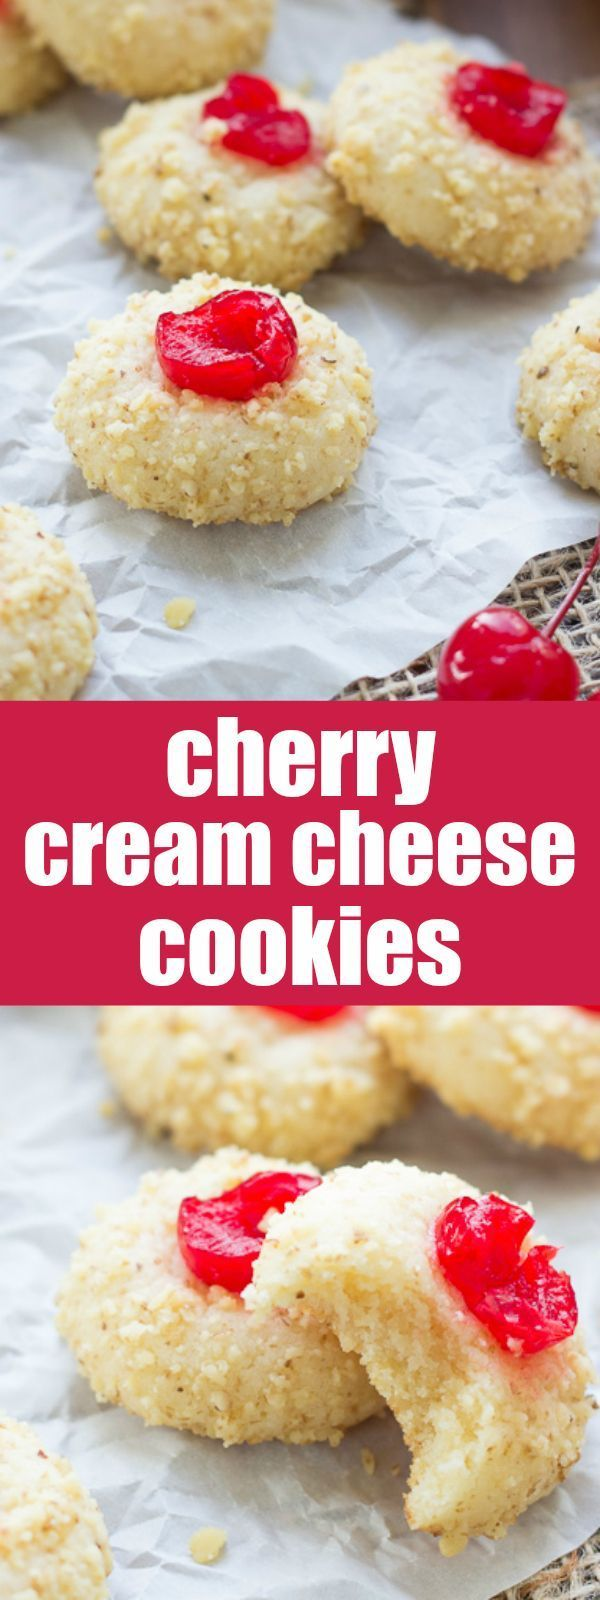 The BEST Cherry Cream Cheese Cookies! My family bakes these every year at Christmas! They are melt-in-your-mouth good! | www.kristineskitchenblog.com